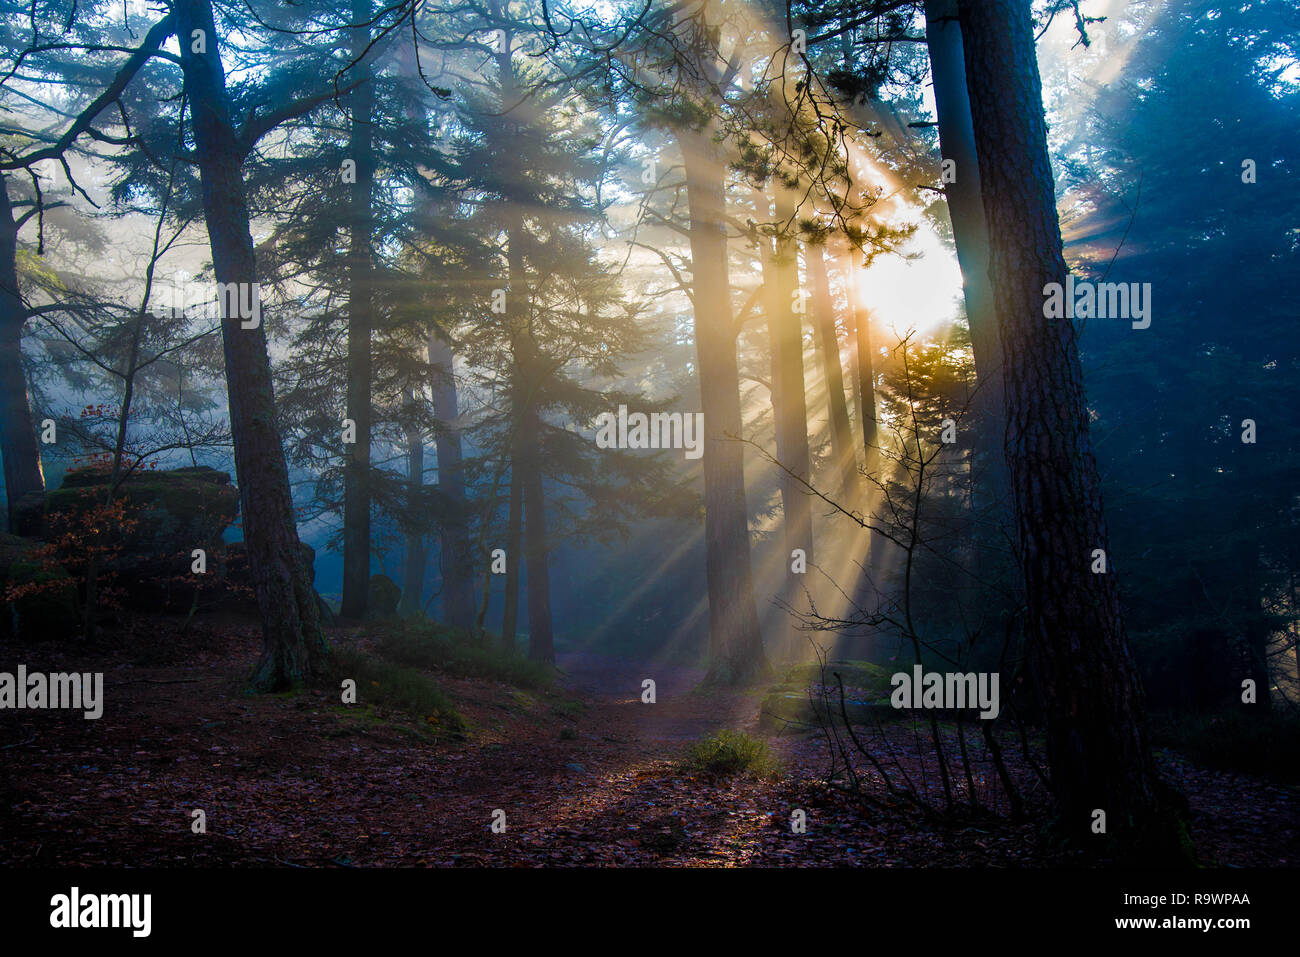 mystical forest in the vosges mountains near the mont saint odile monastery - Stock Image